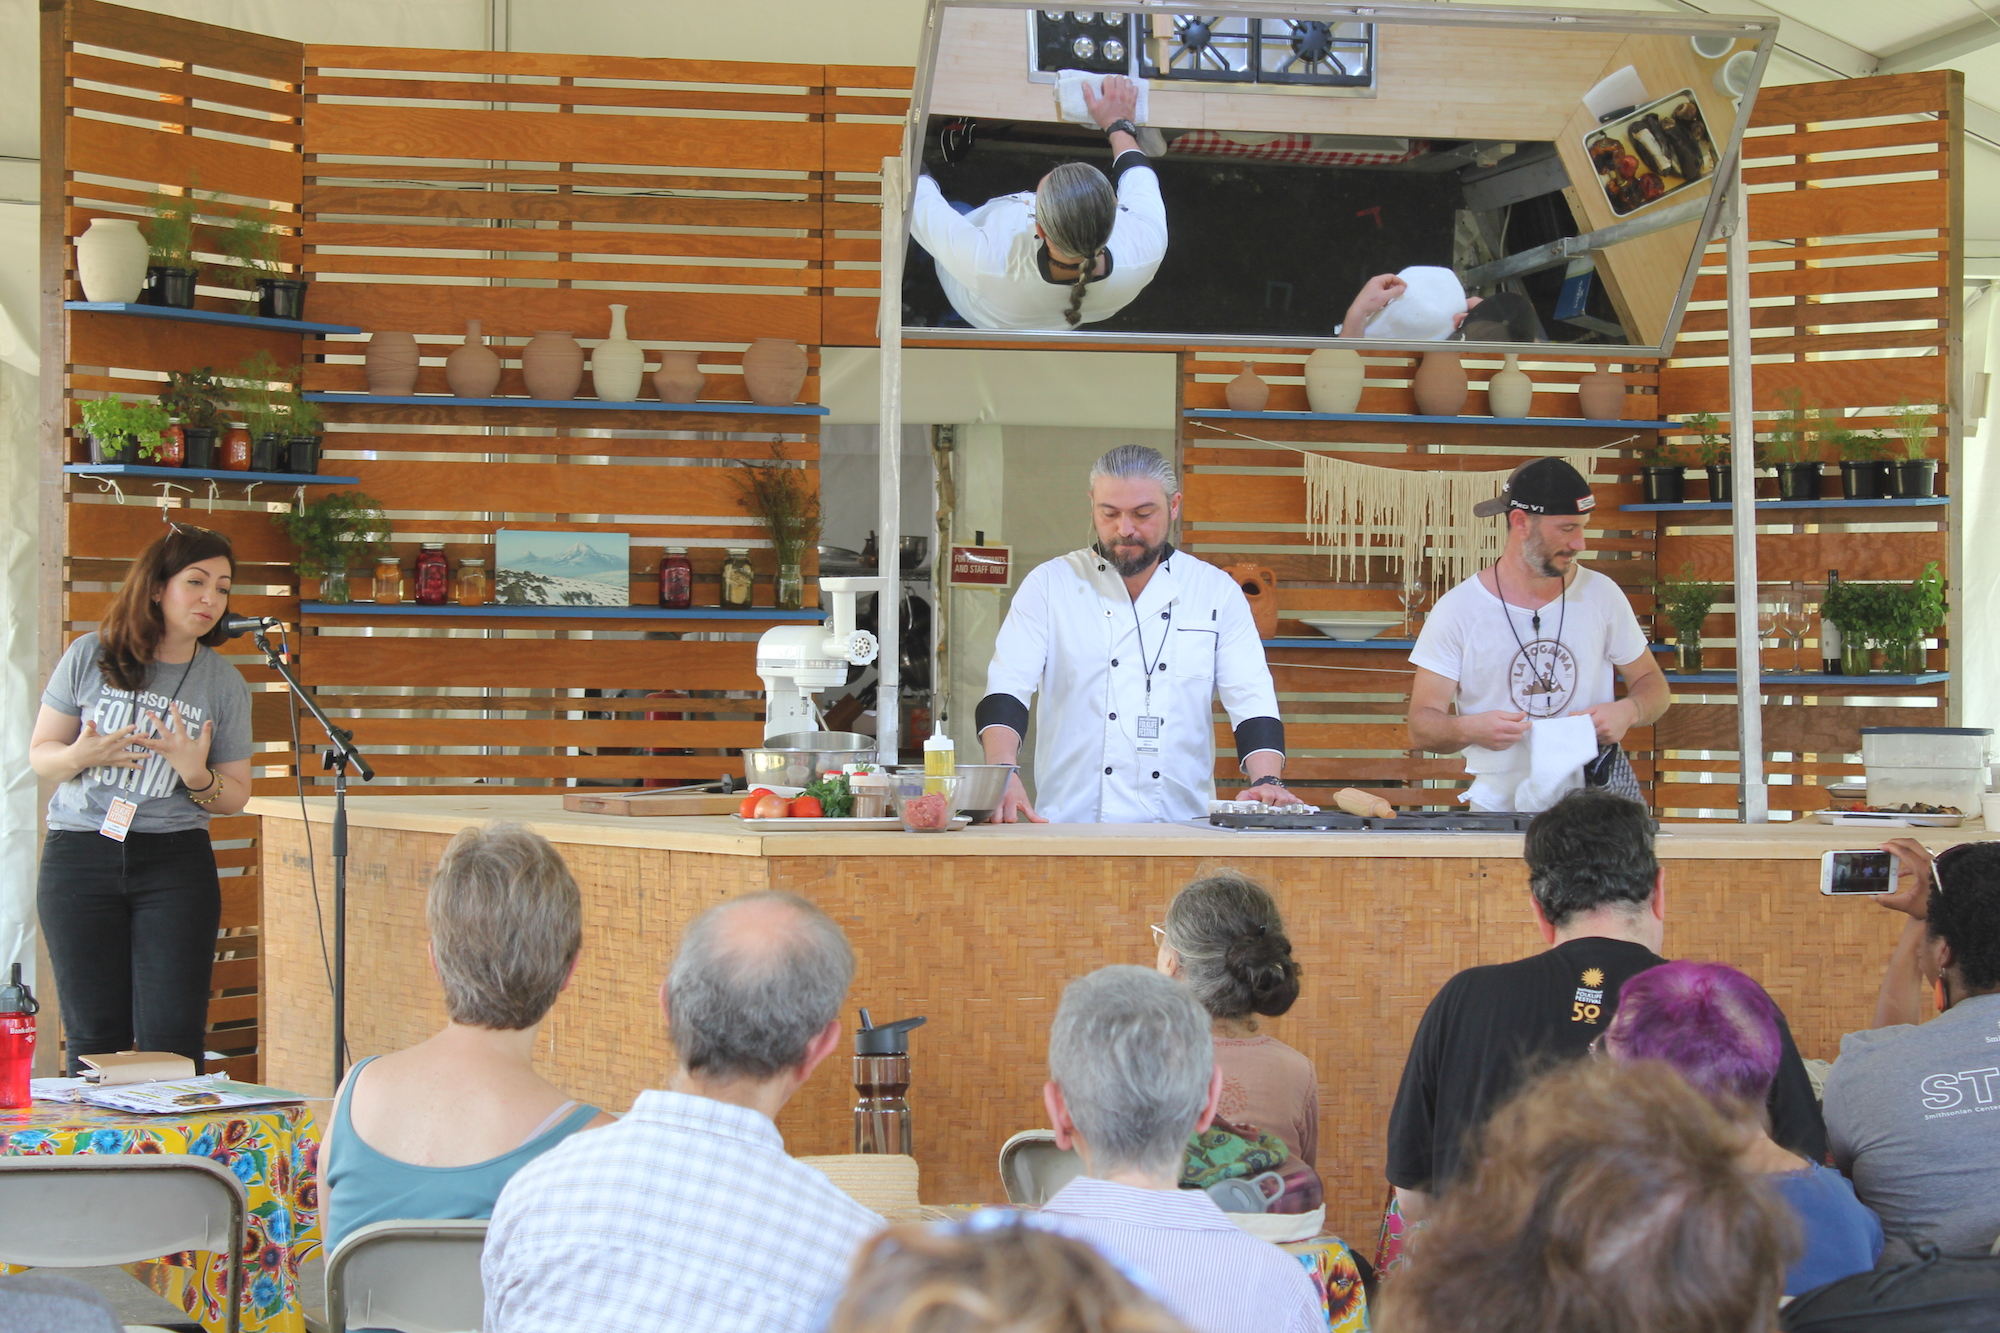 Cooking demonstrations by Armenian chef Antranig Kilislian and a Catalan chef